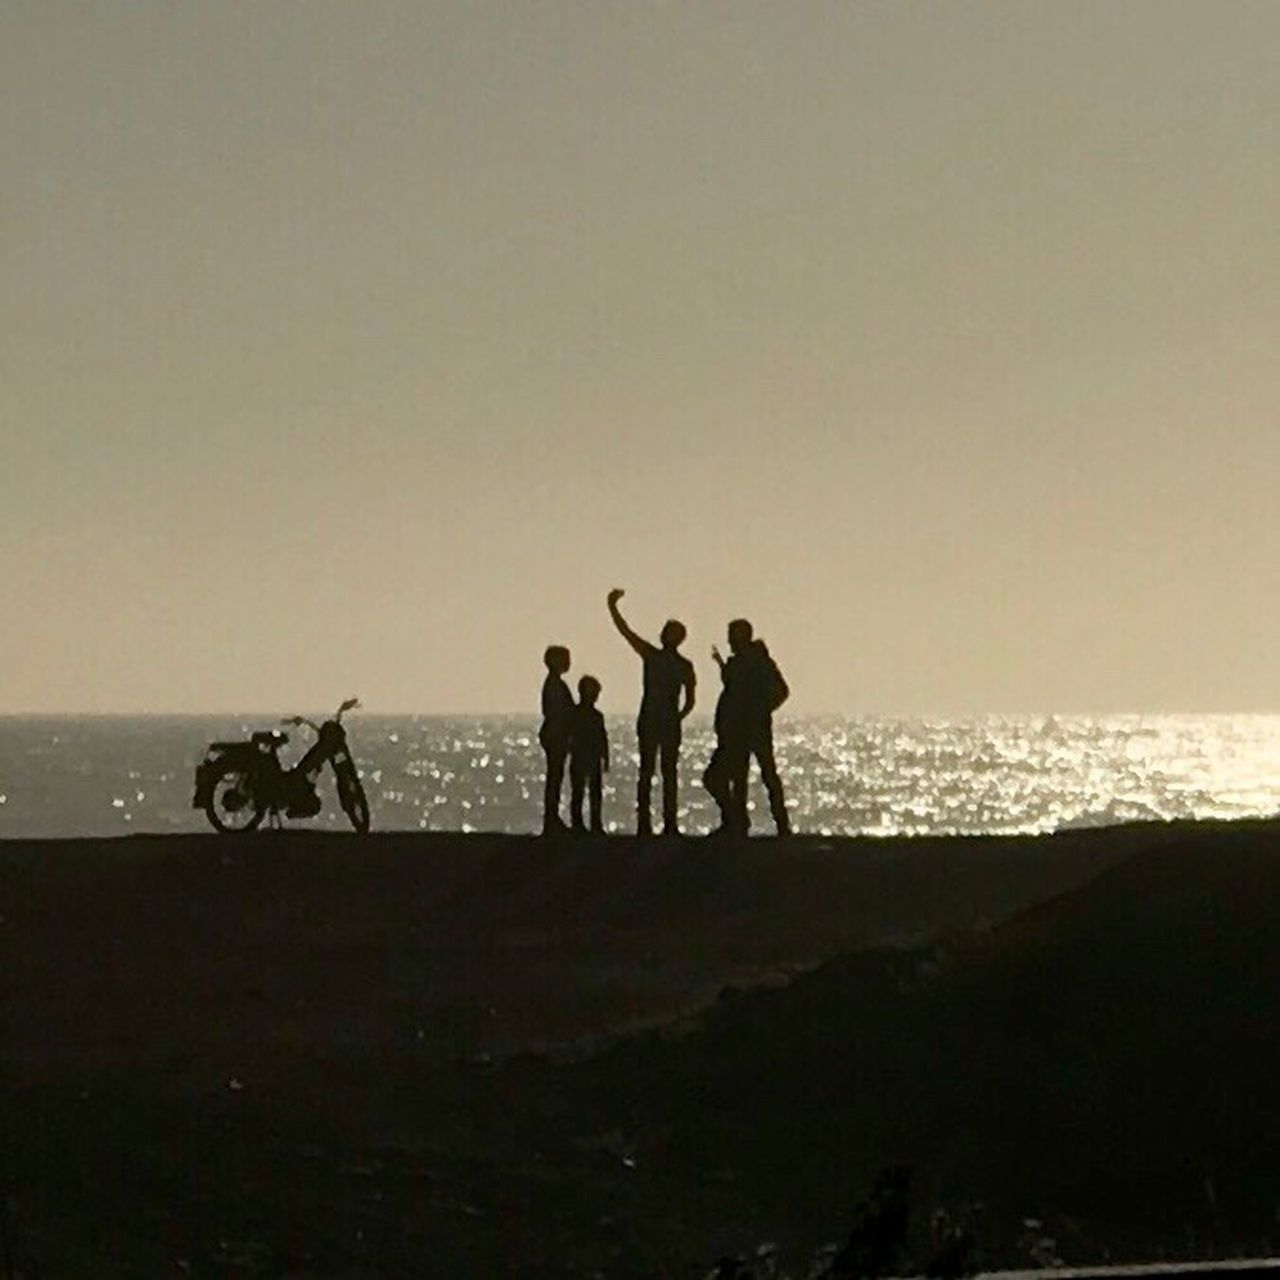 horse, silhouette, men, real people, riding, sunset, transportation, sport, leisure activity, togetherness, sky, nature, horseback riding, competition, beach, lifestyles, clear sky, sand, sea, outdoors, full length, domestic animals, friendship, mammal, day, adult, people